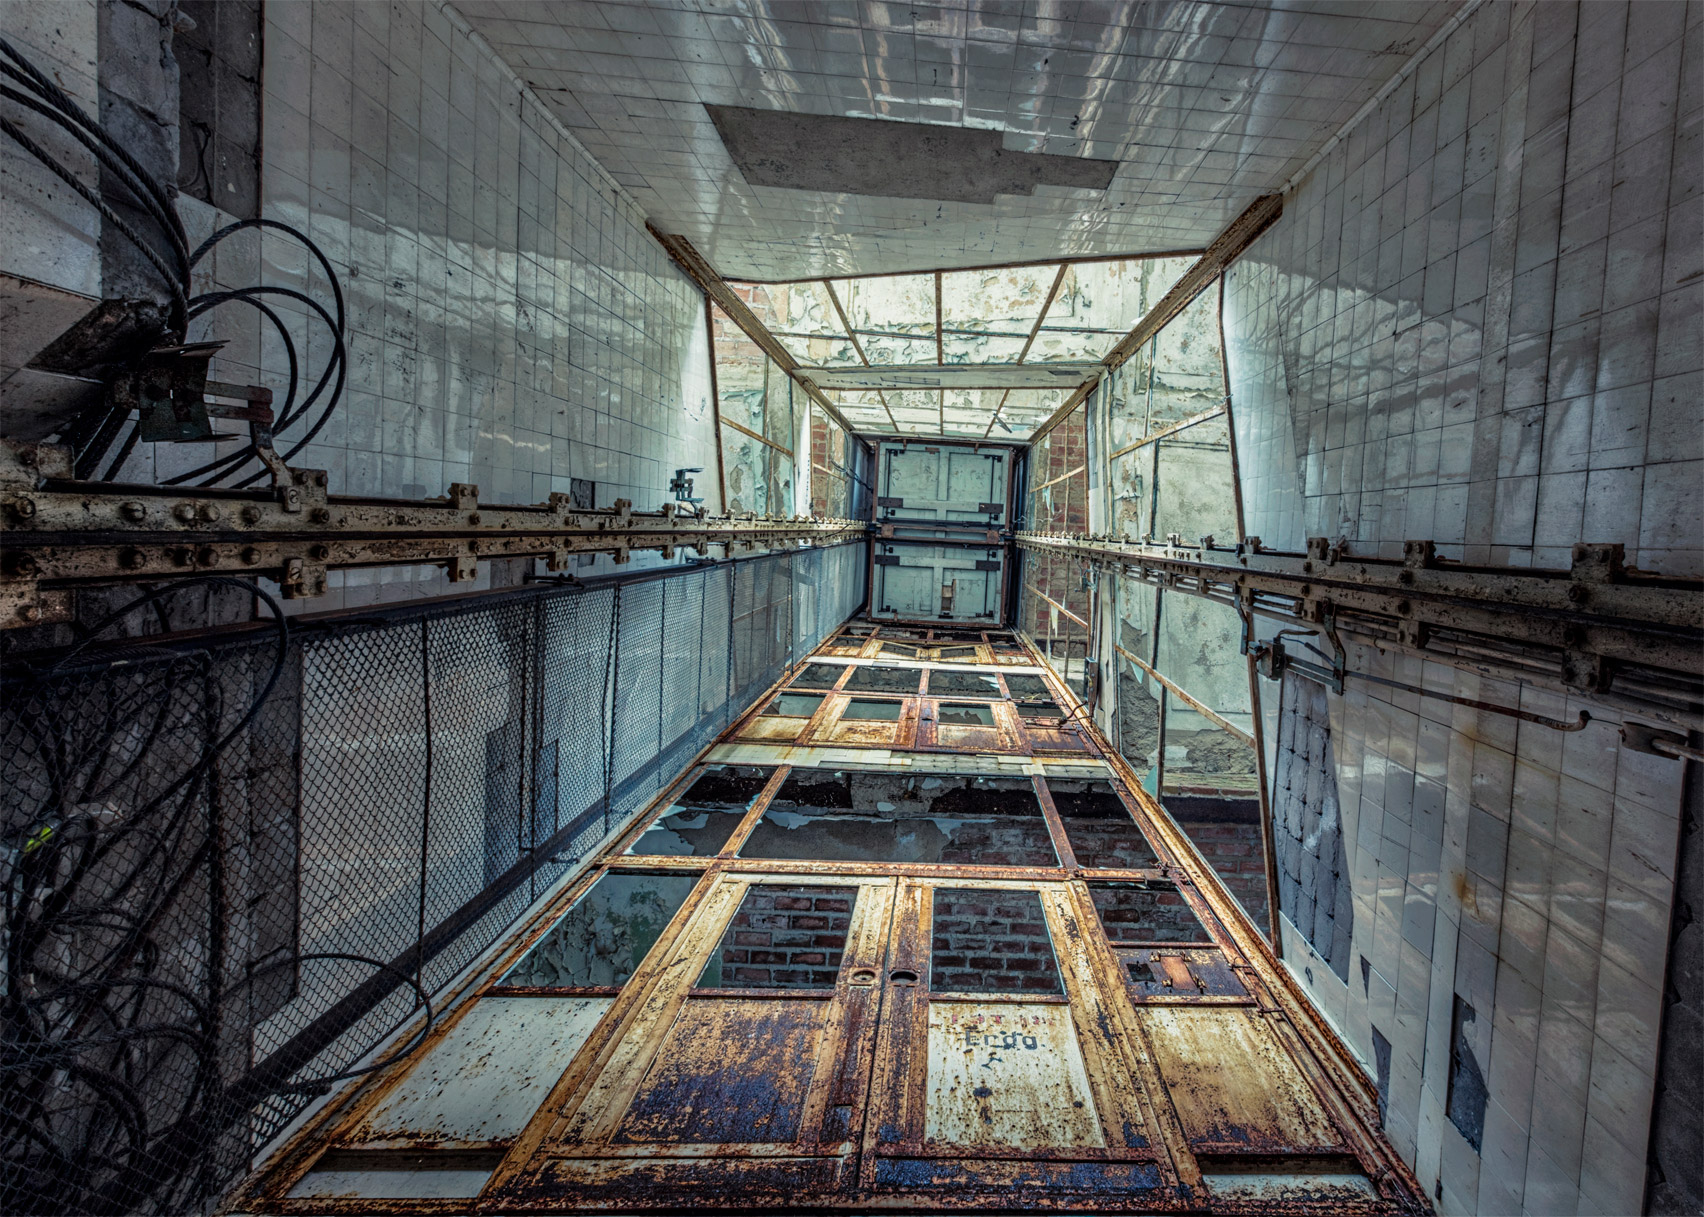 Christian Richter's Abandoned photographs of Europe's empty buildings